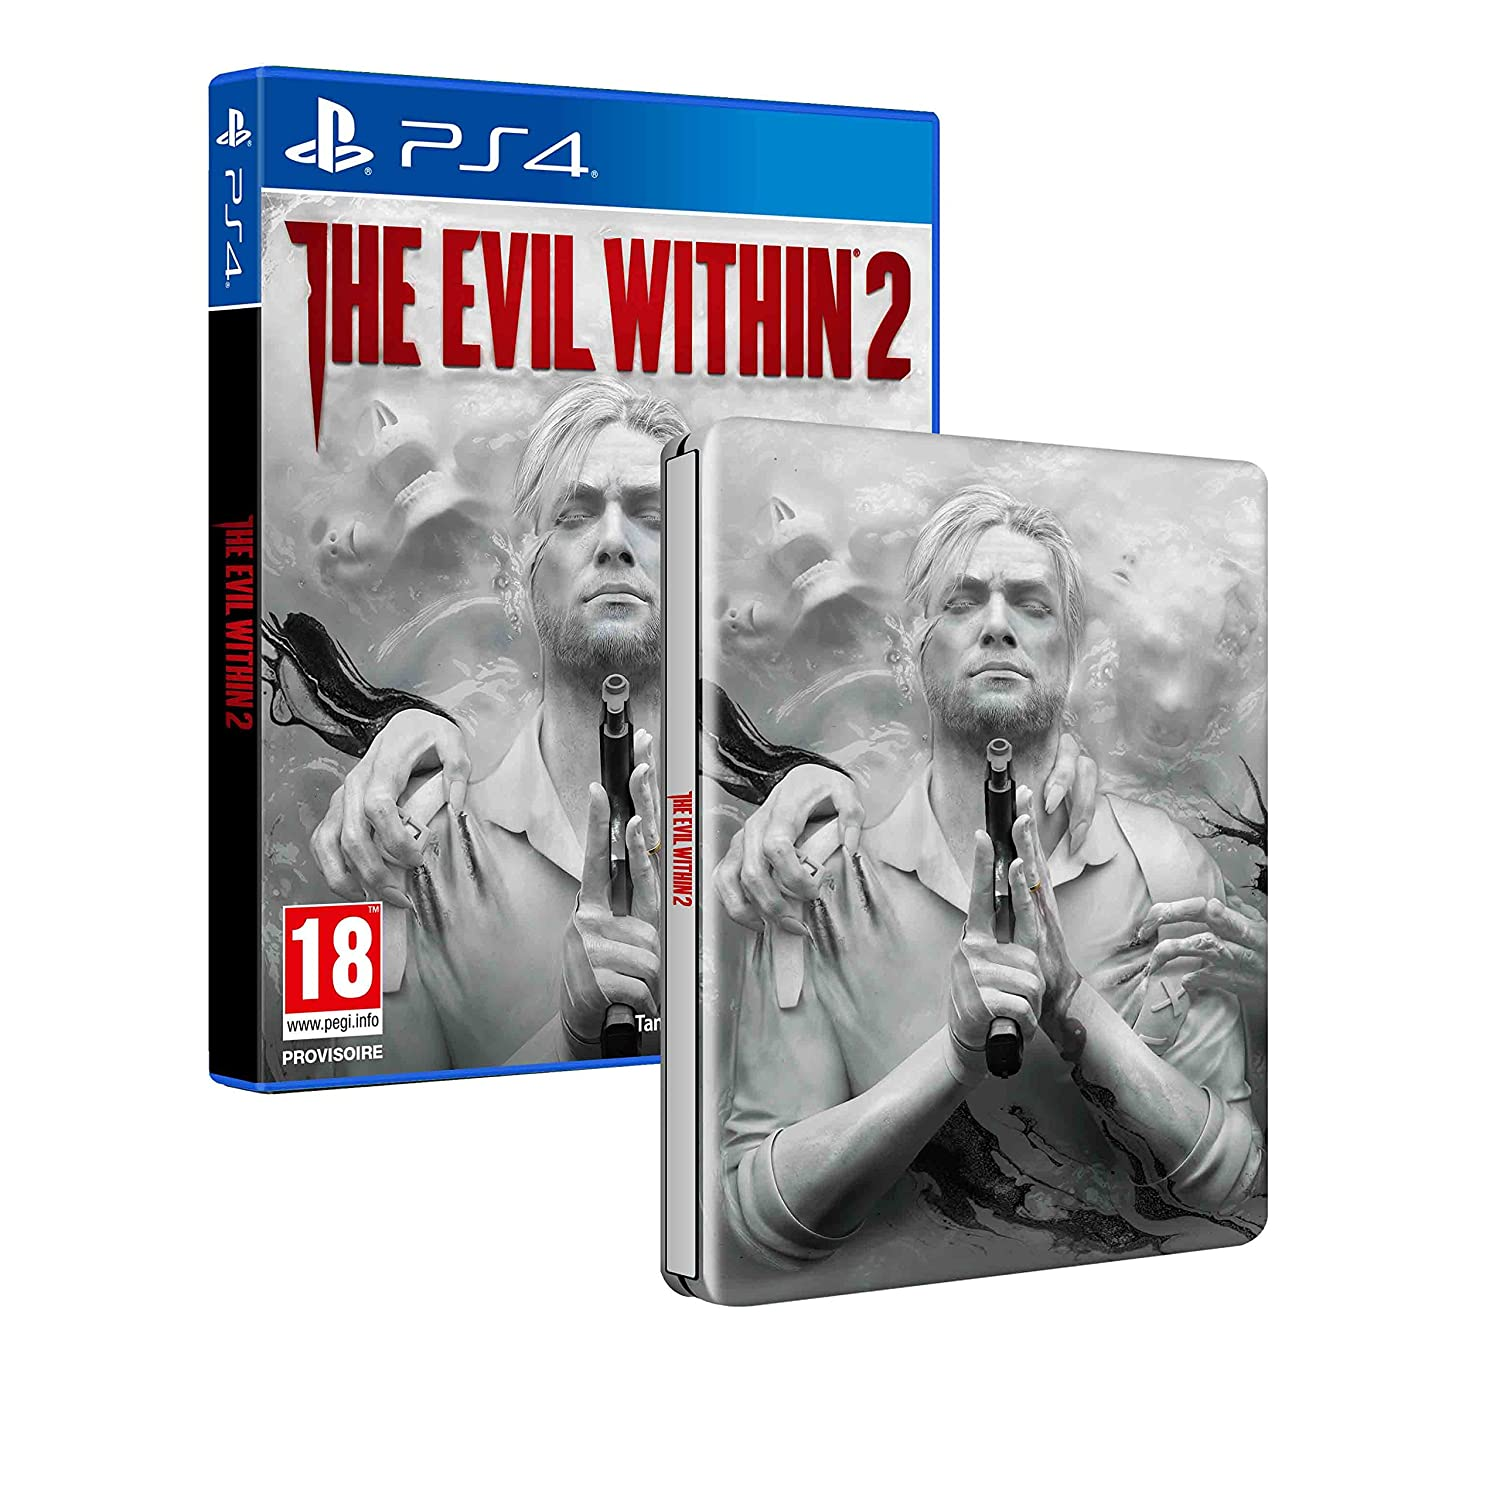 The Evil Within 2 + steelbook (exclusif Amazon)